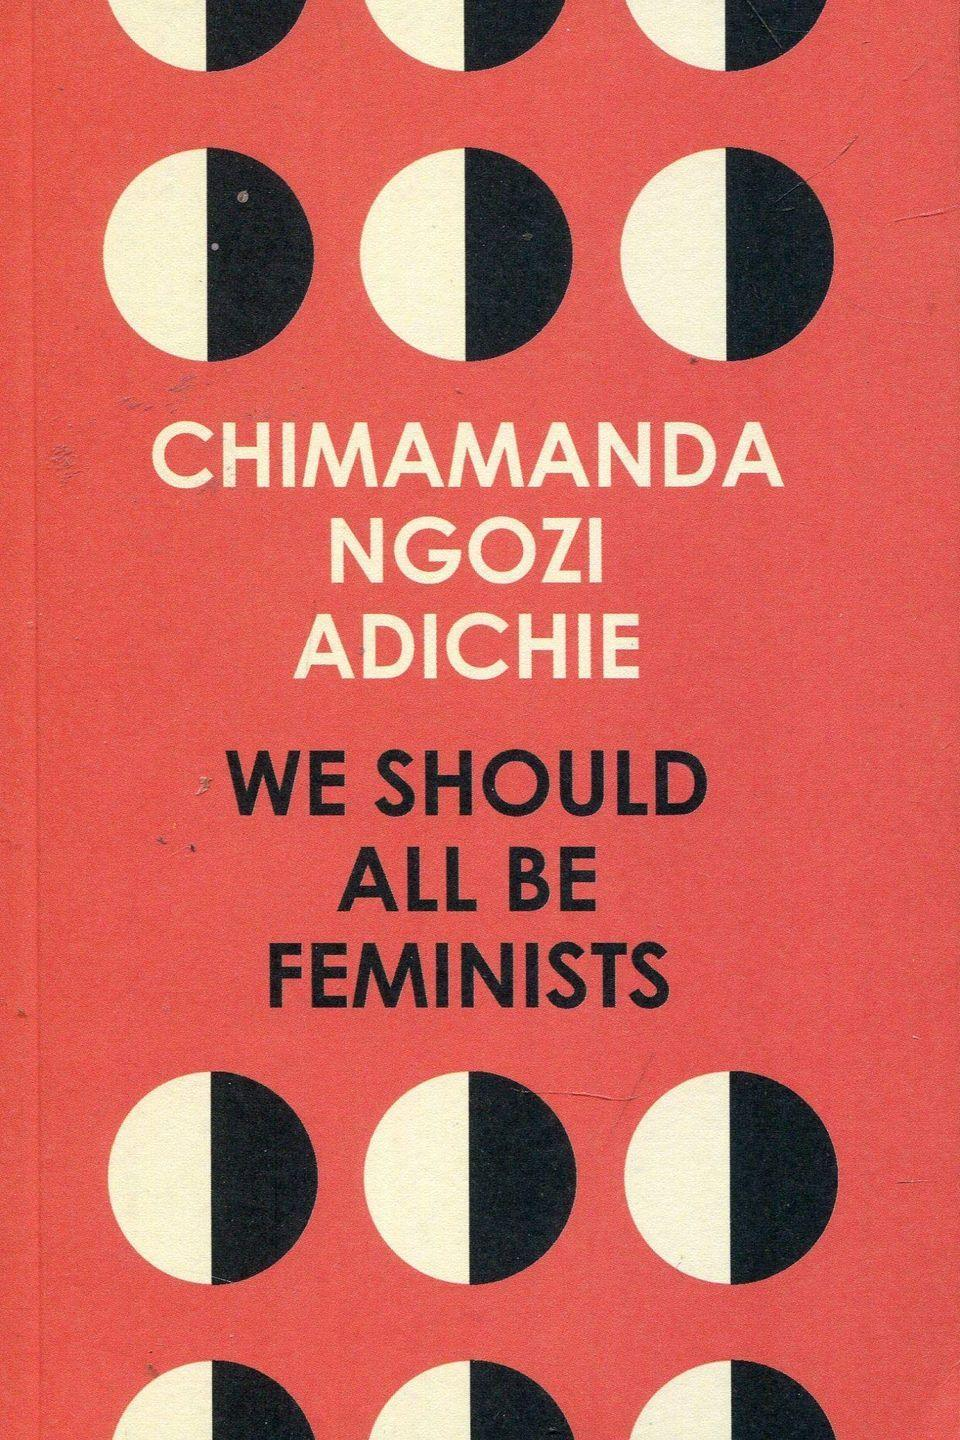 "<p>What does feminism mean today? Chimamanda Ngozi Adichie eloquently argues what it means to be a feminist in the 21st century.</p><p><a class=""link rapid-noclick-resp"" href=""https://www.amazon.co.uk/We-Should-All-Be-Feminists/dp/0008115273/ref=sr_1_1?crid=XSD3X8W3GN08&dchild=1&keywords=we+should+all+be+feminists&qid=1586947272&sprefix=WE+SHOULD+ALL%2Caps%2C187&sr=8-1&tag=hearstuk-yahoo-21&ascsubtag=%5Bartid%7C1921.g.32141605%5Bsrc%7Cyahoo-uk"" rel=""nofollow noopener"" target=""_blank"" data-ylk=""slk:SHOP NOW"">SHOP NOW</a></p>"